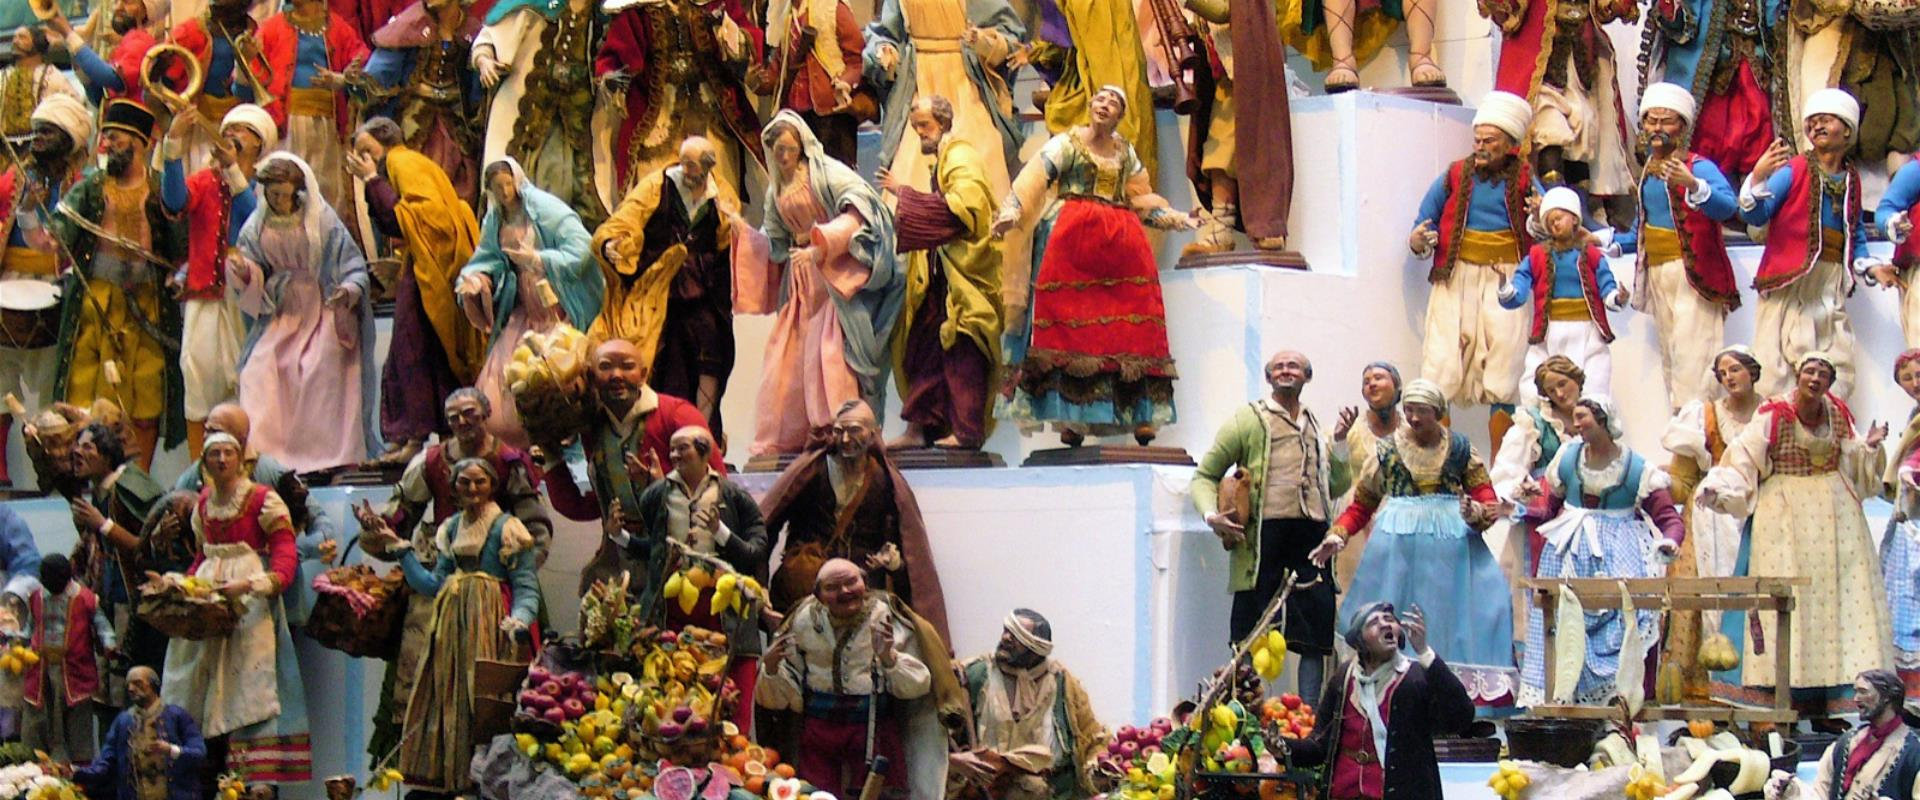 Check out the most famous street in Naples, entirely dedicated to the Nativity scene.